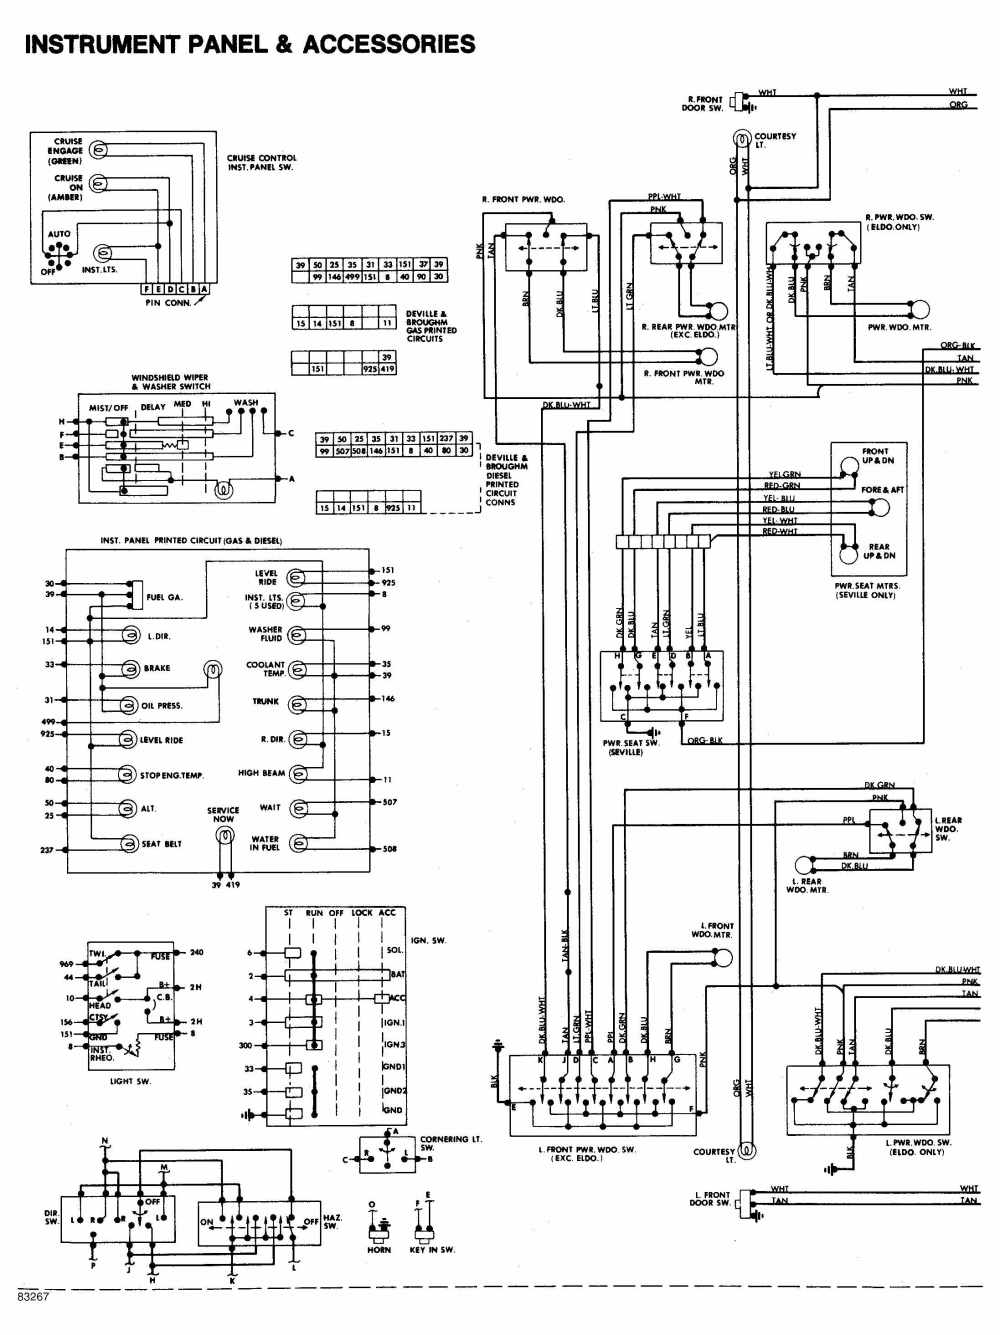 medium resolution of wiring diagram chevy s10 radio wiring diagram cadillac deville power 2004 chevy radio wiring diagram 1968 gm radio wiring diagram